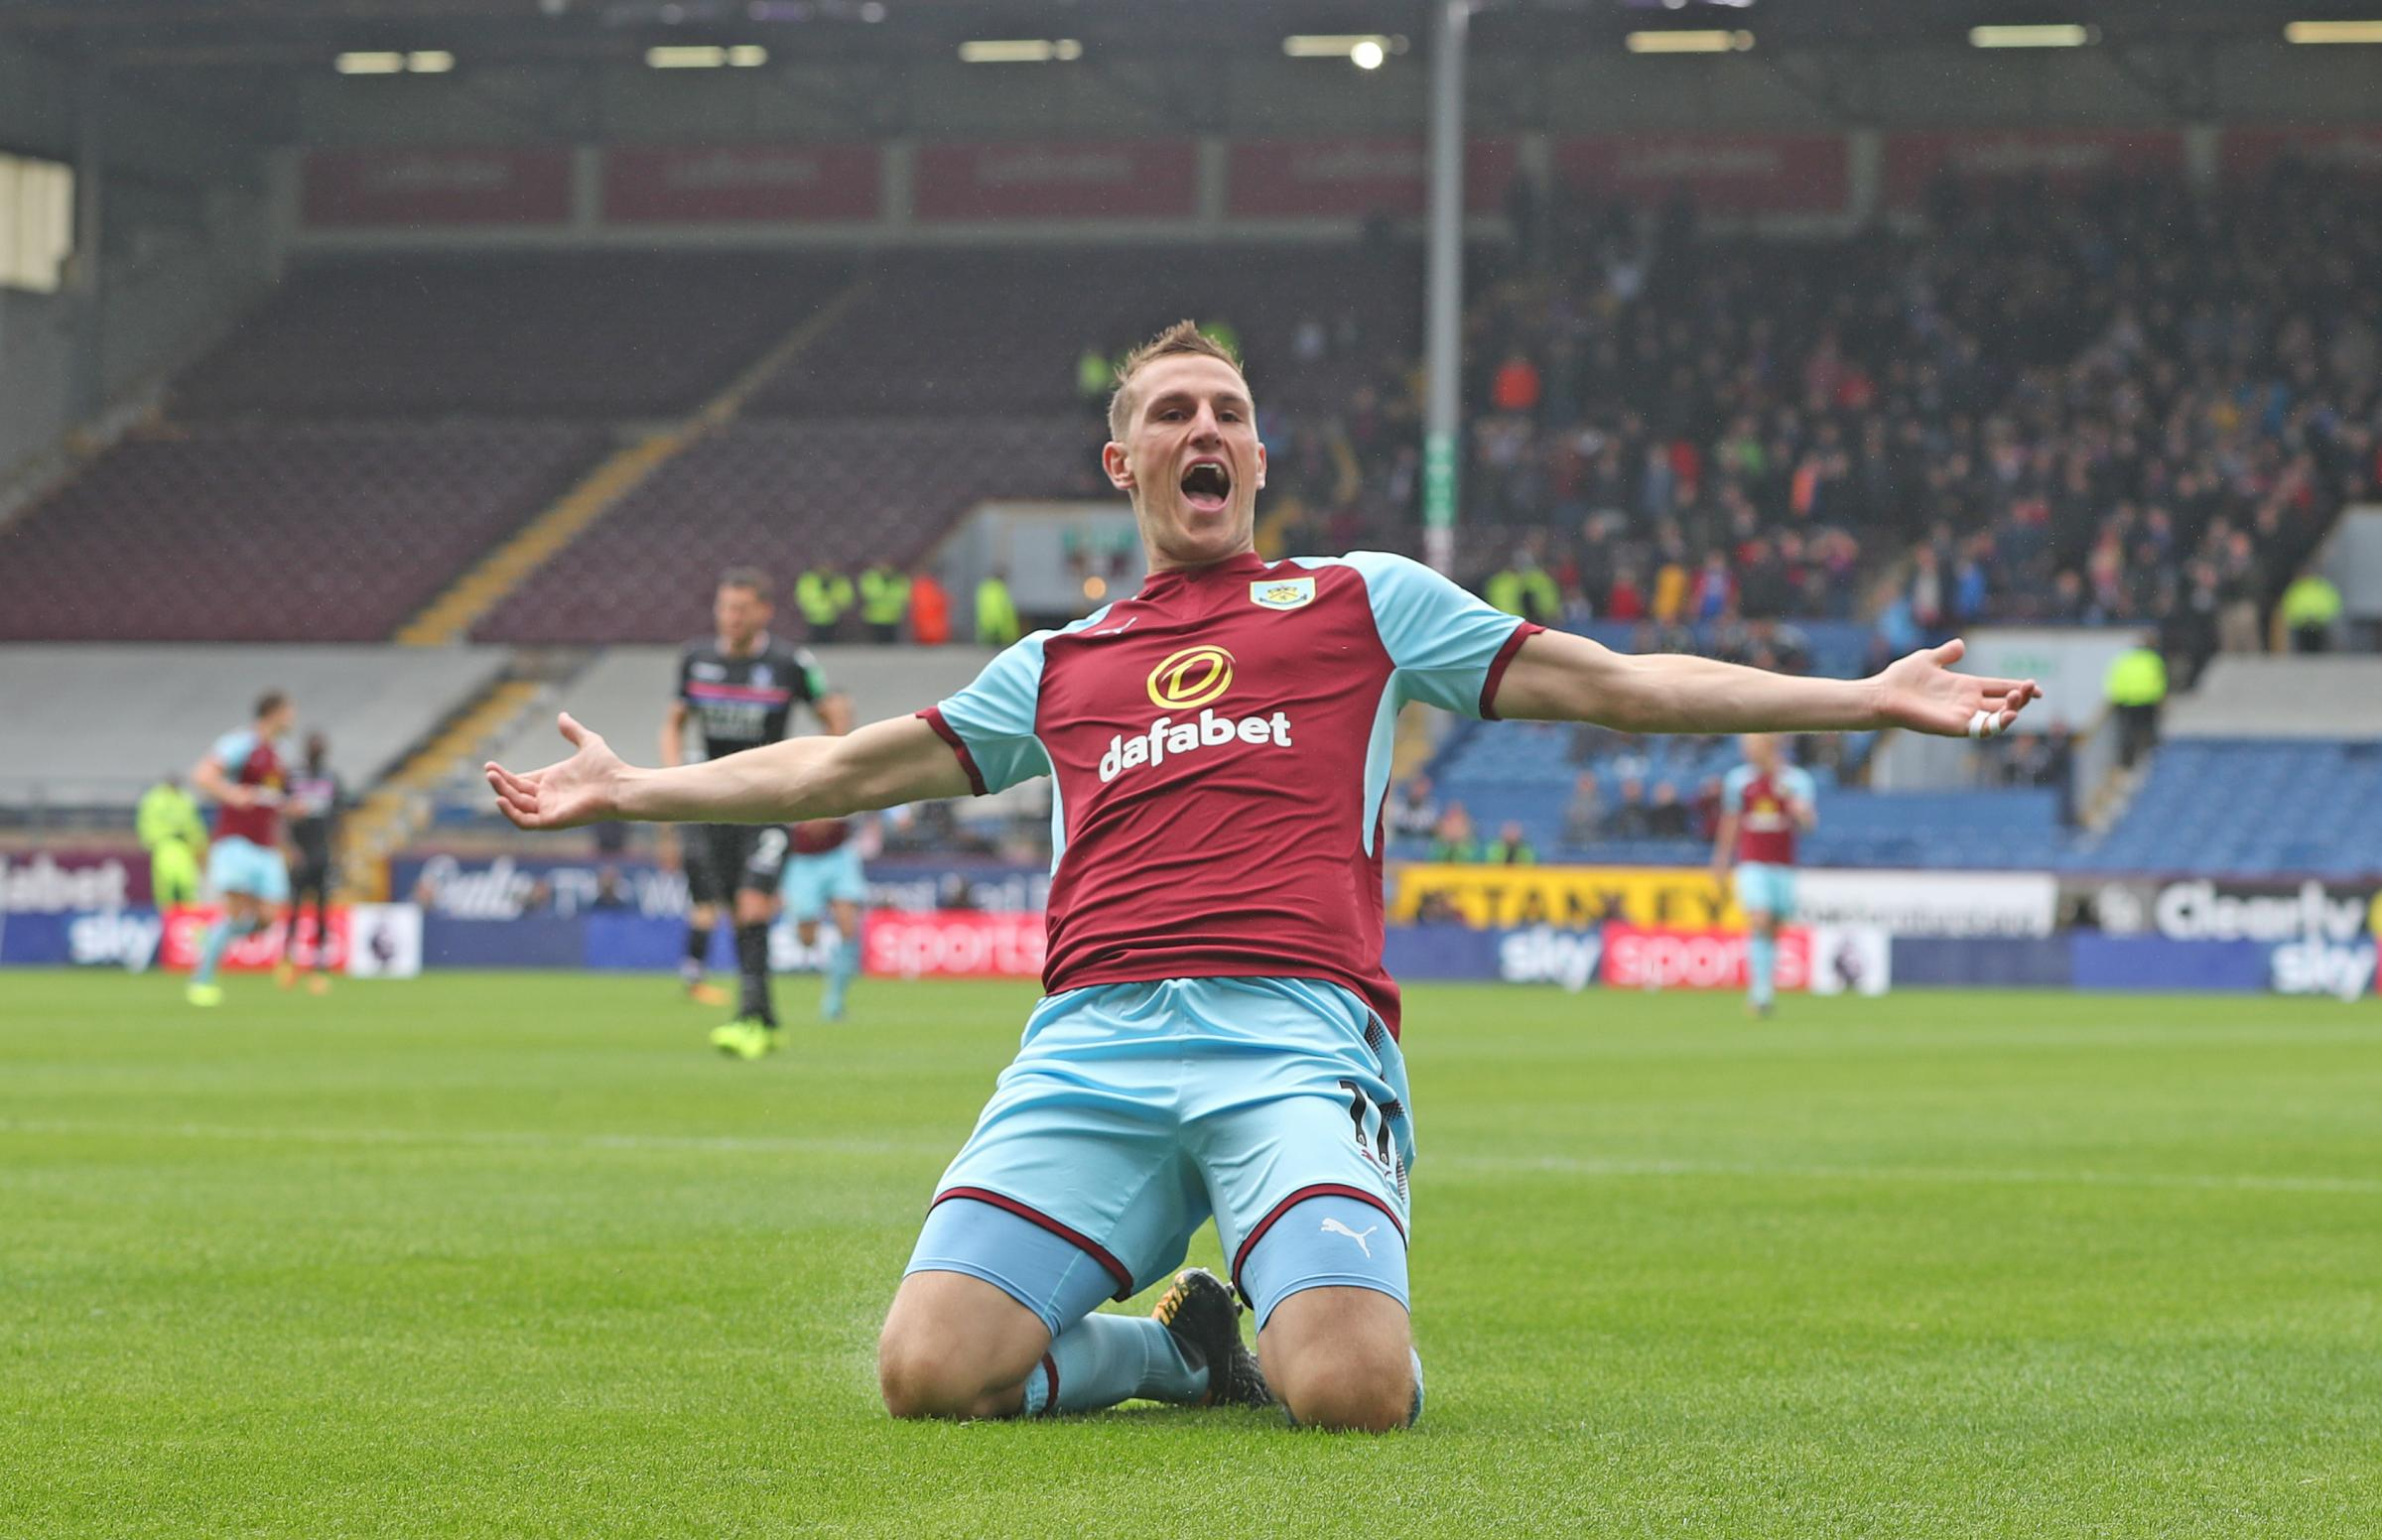 Striker Chris Wood has settled quickly into life at Turf Moor with two goals for the Clarets already since joining from Leeds for a £15m fee last month ahead of the cup tie against his former club tonight